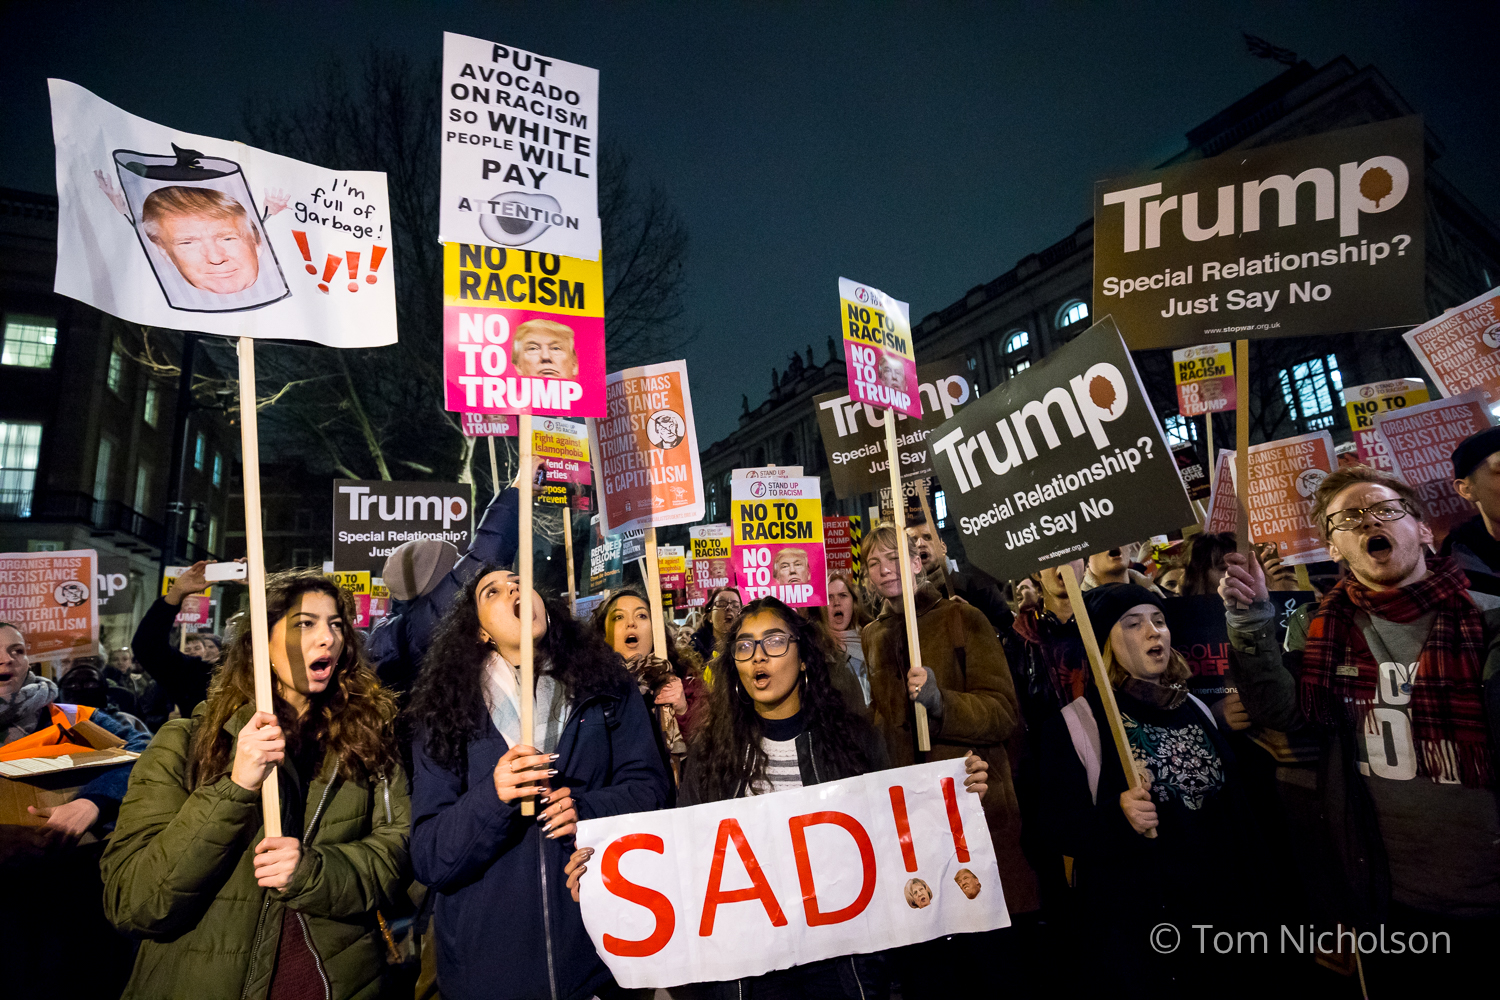 ©2017 Tom Nicholson. 30/01/2017. London, UK. Demonstrators protest against Donald Trump's executive order to ban people from seven Muslim-majority countries entering the US. Theresa May has invited Trump for a state visit to the UK. However, a petition calling for the cancellation of this visit has now passed 1 million signatures.